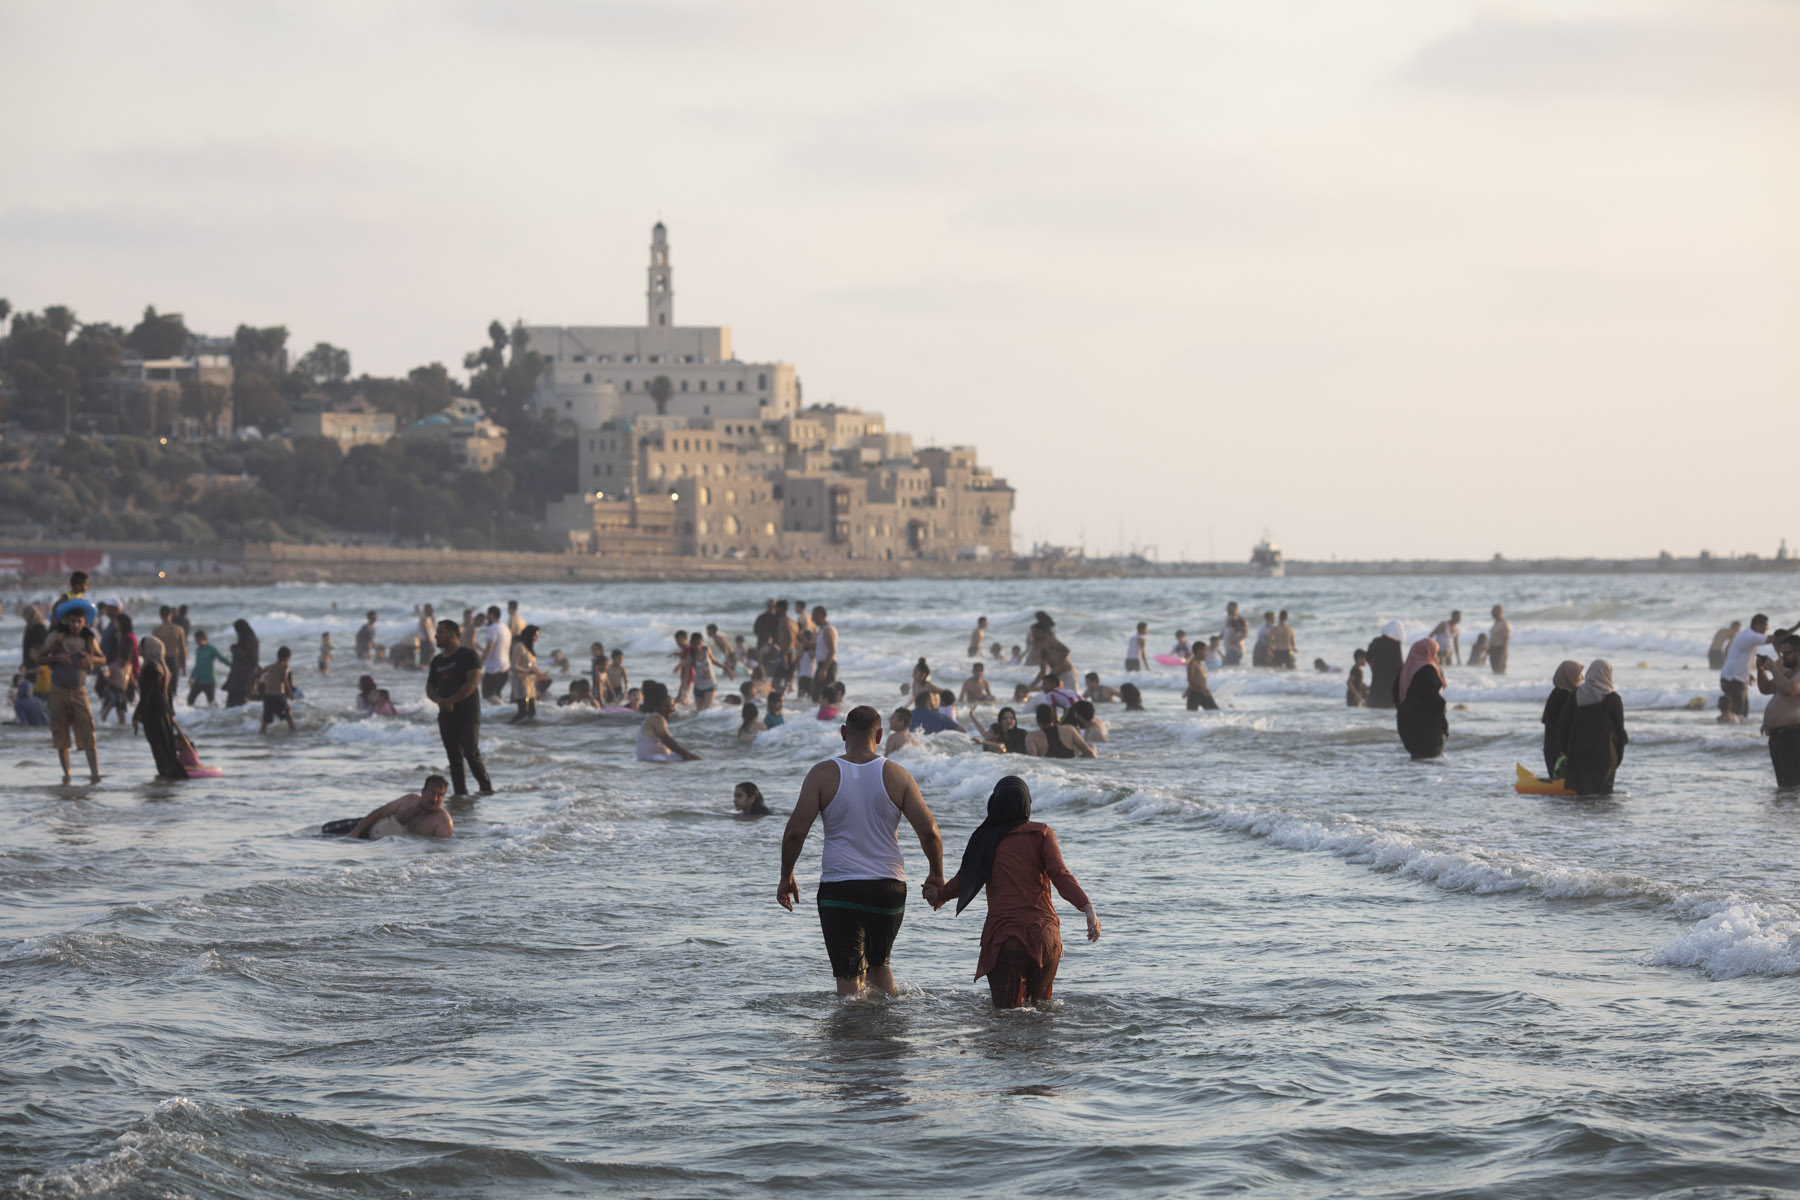 Palestinian families, some of whom are from the West Bank, enjoy the sea in Jaffa. (Activestills)